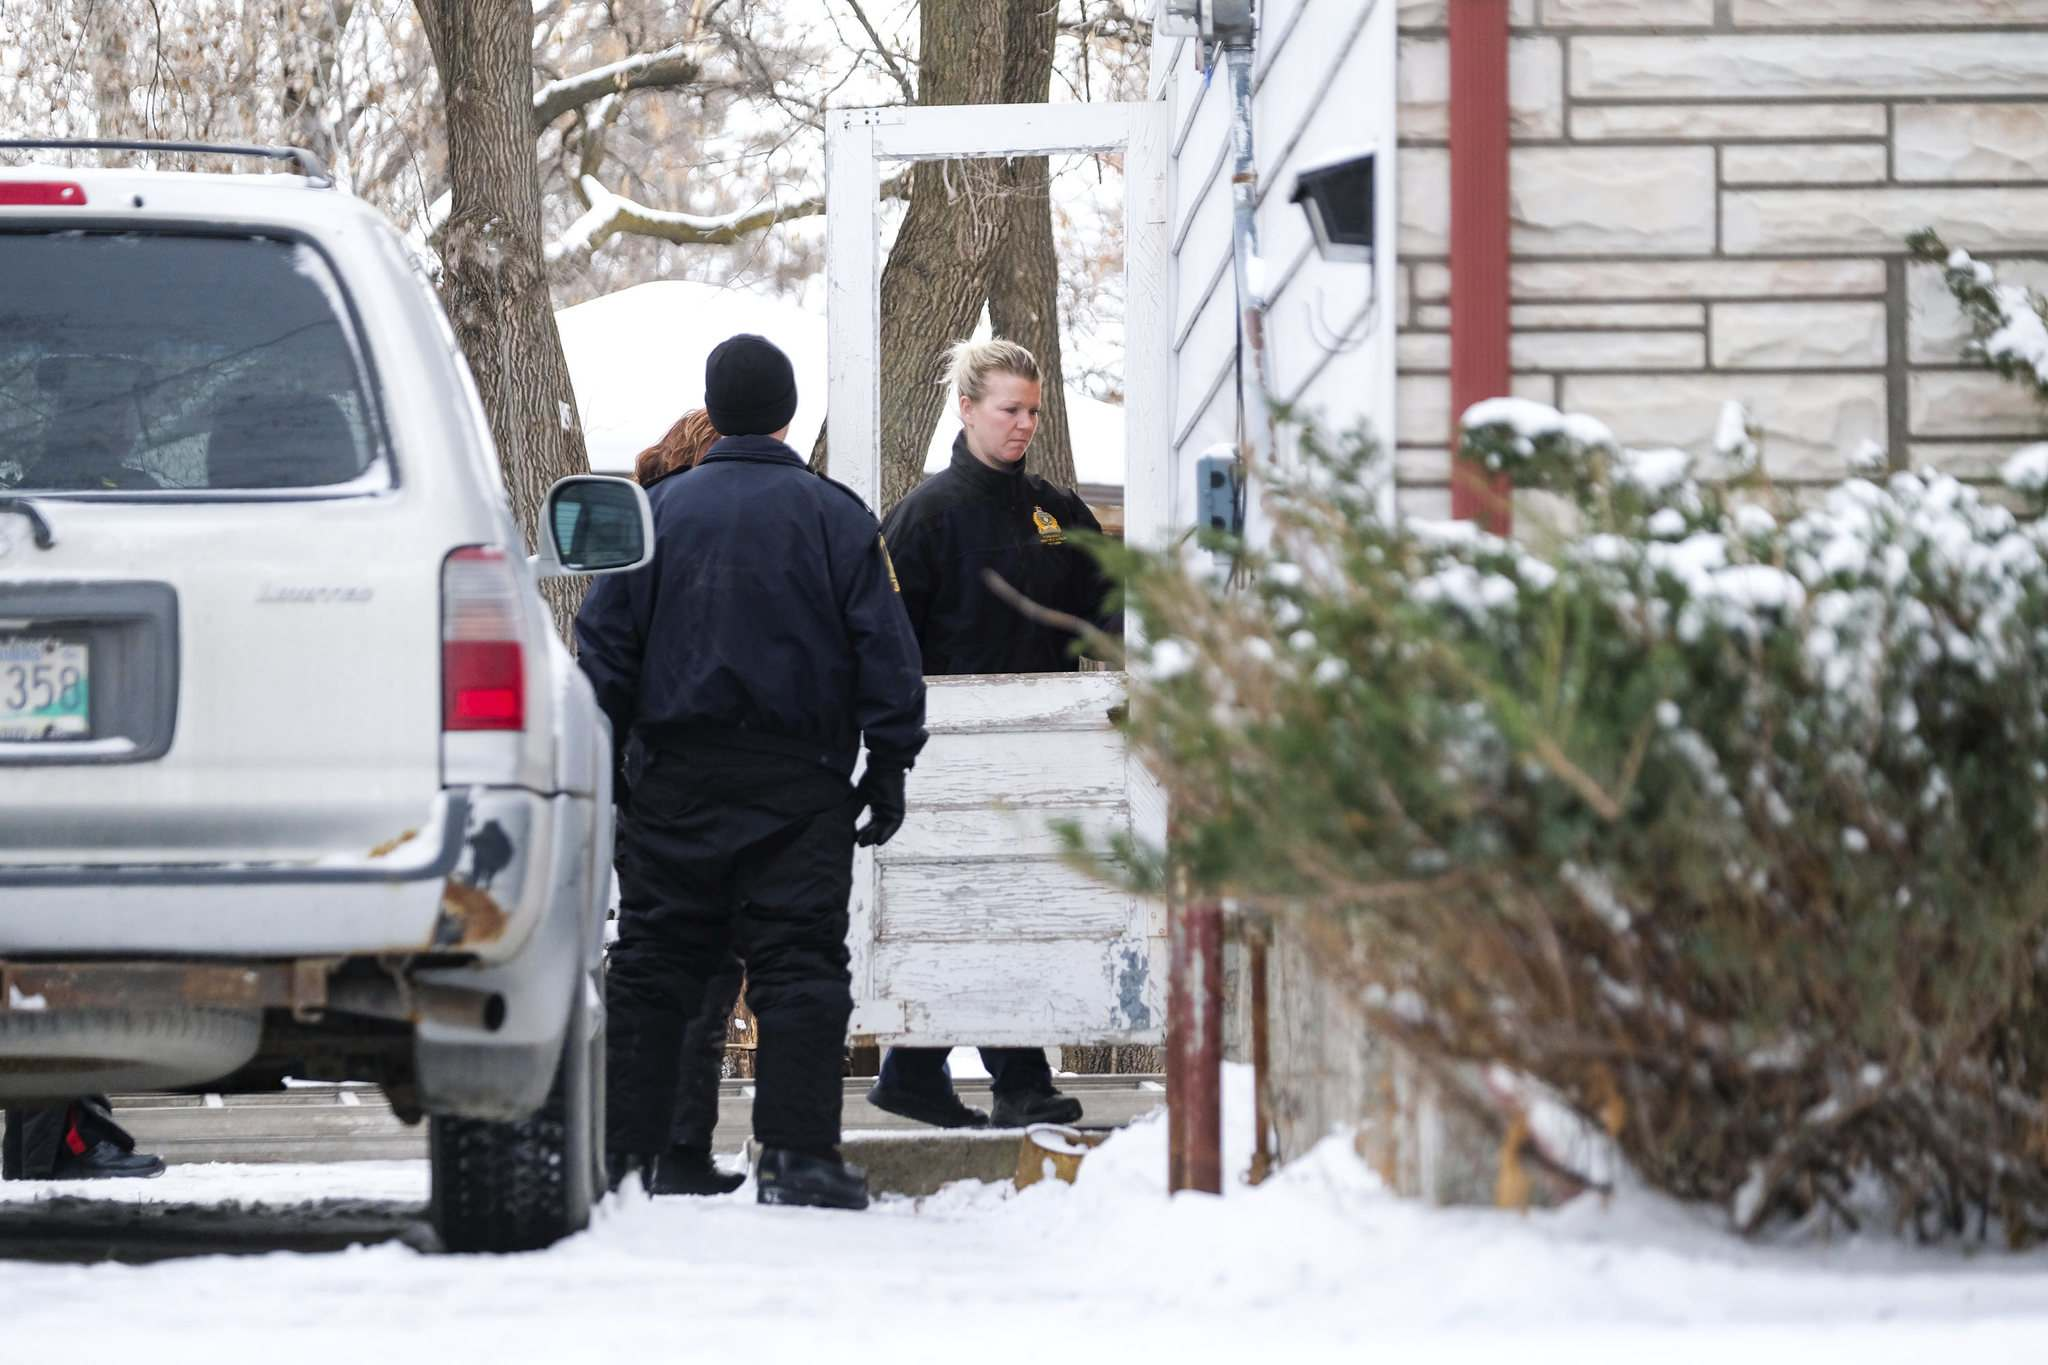 A man has been arrested as police continue to investigate the city's first homicide of 2020 on Hindley Avenue, where a woman was found critically injured Friday night. She later died in hospital. (Daniel Crump / Winnipeg Free Press)</p>